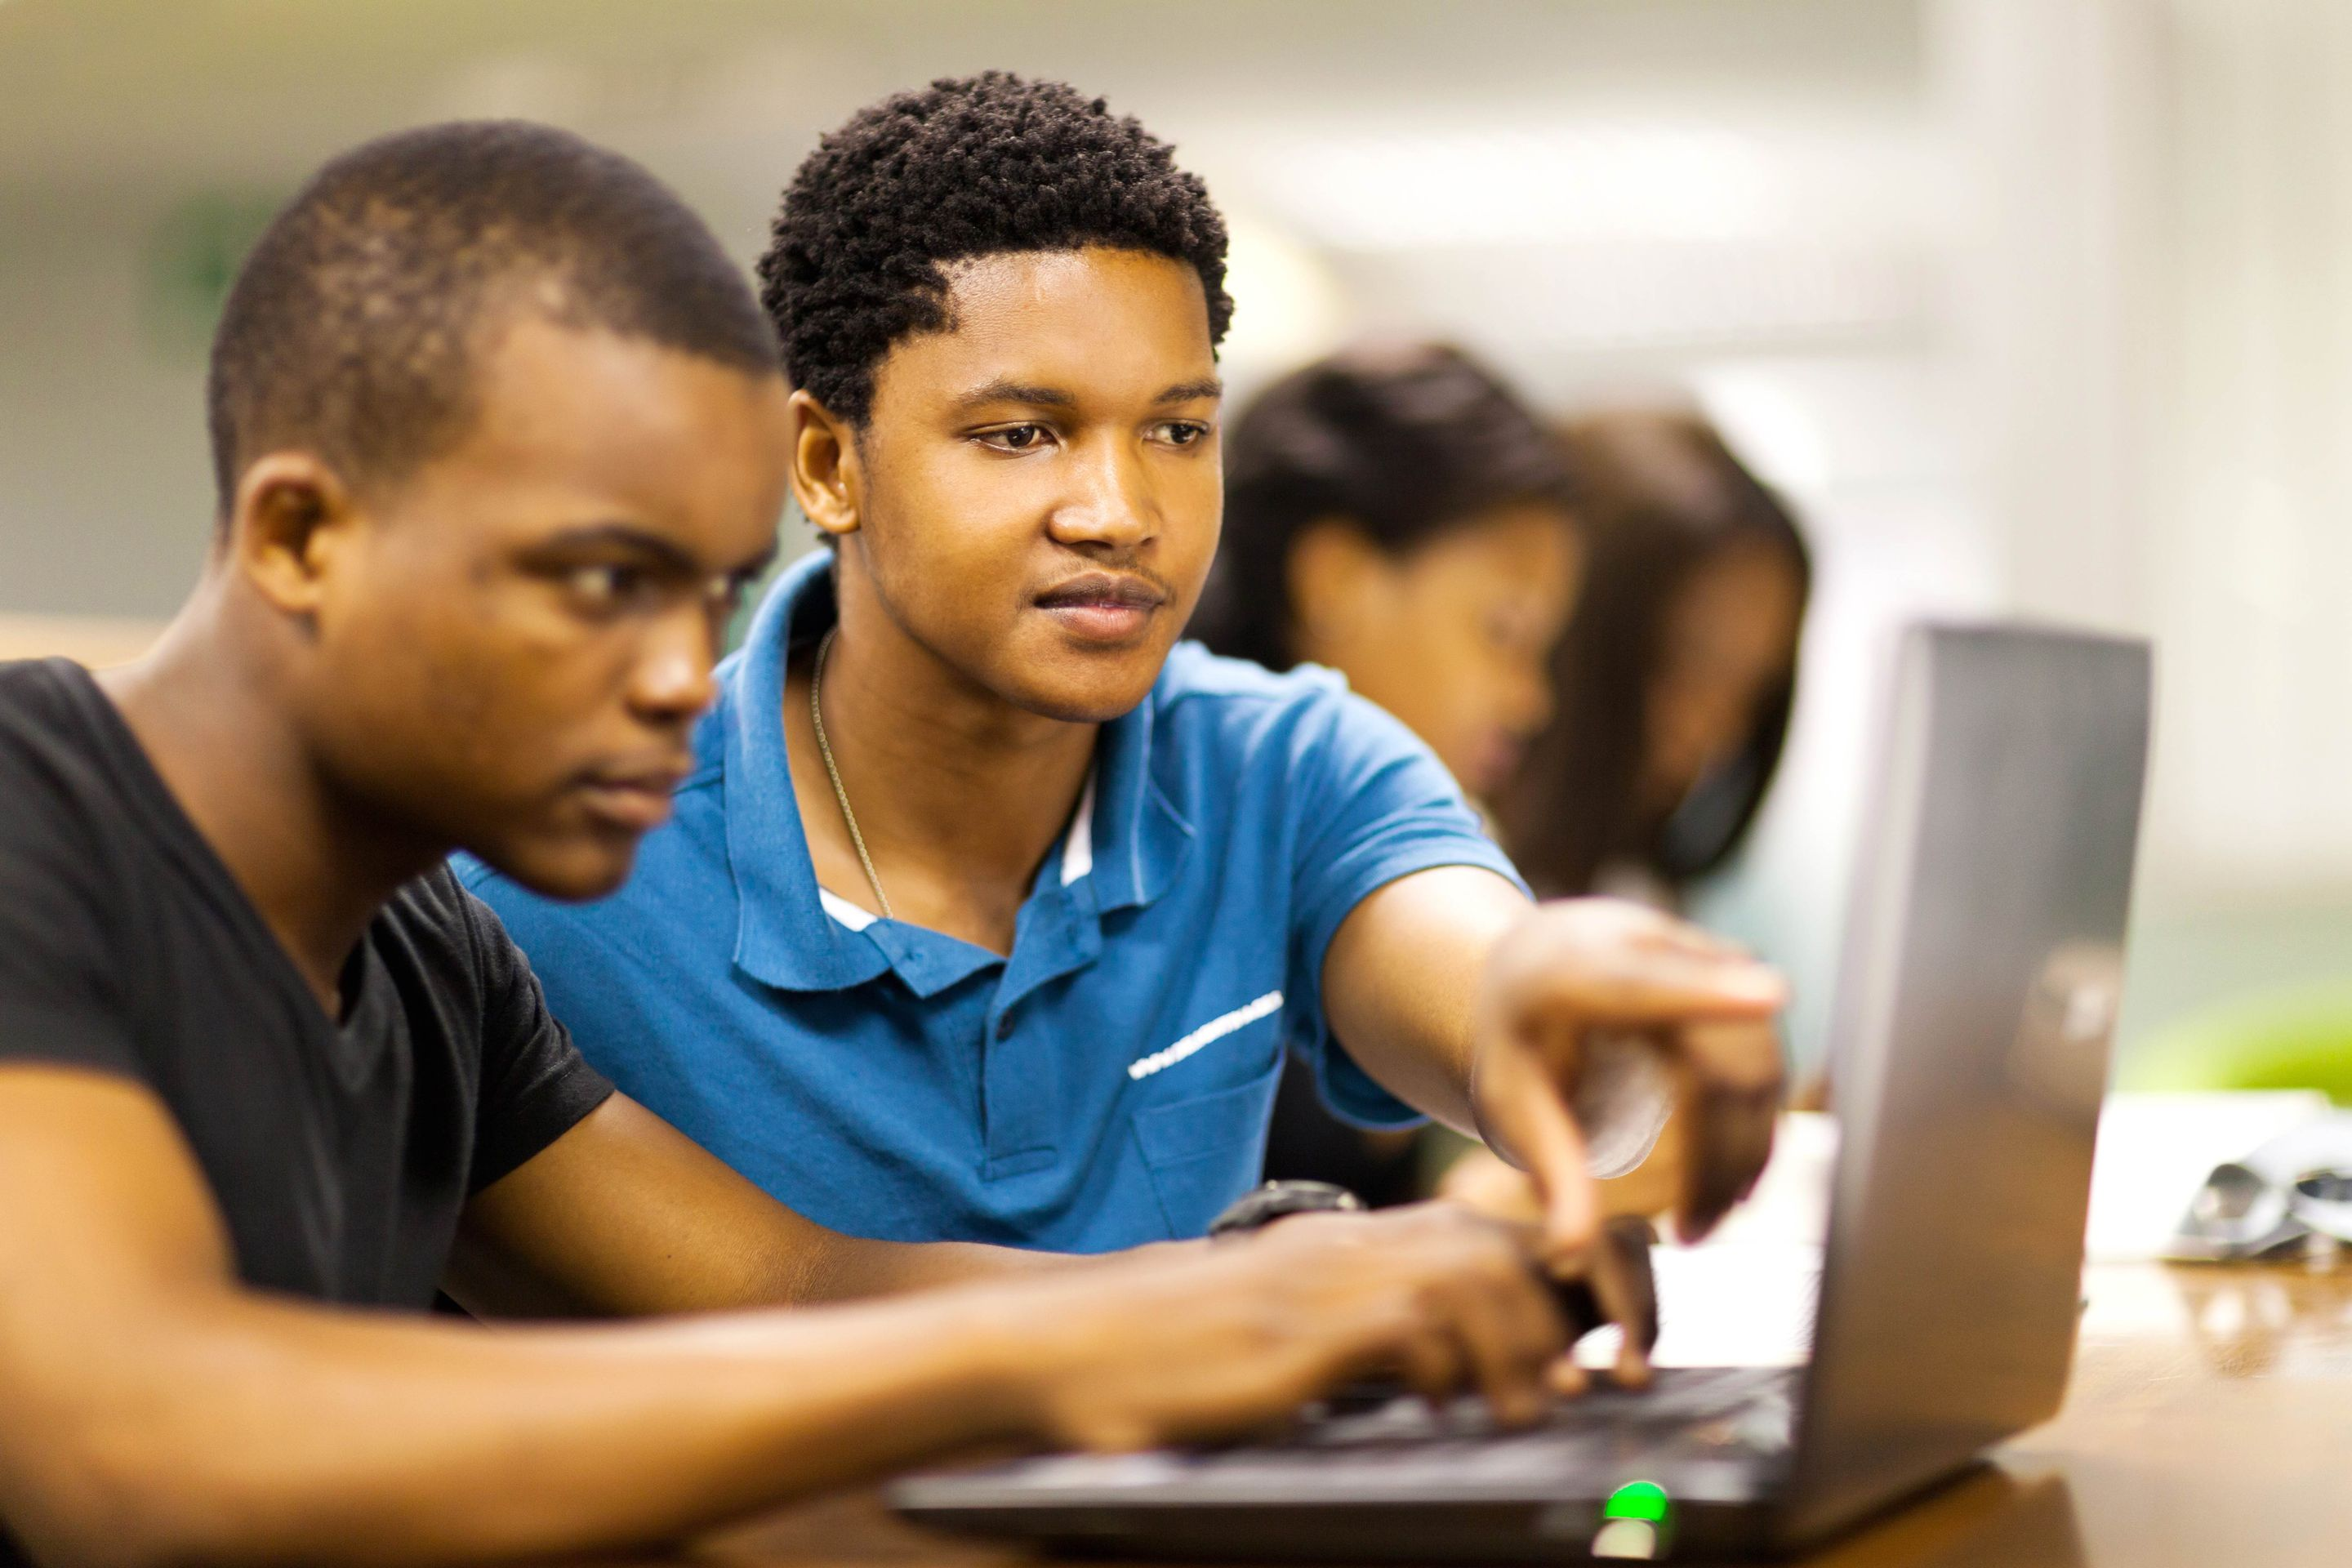 Two high school students using a laptop together.